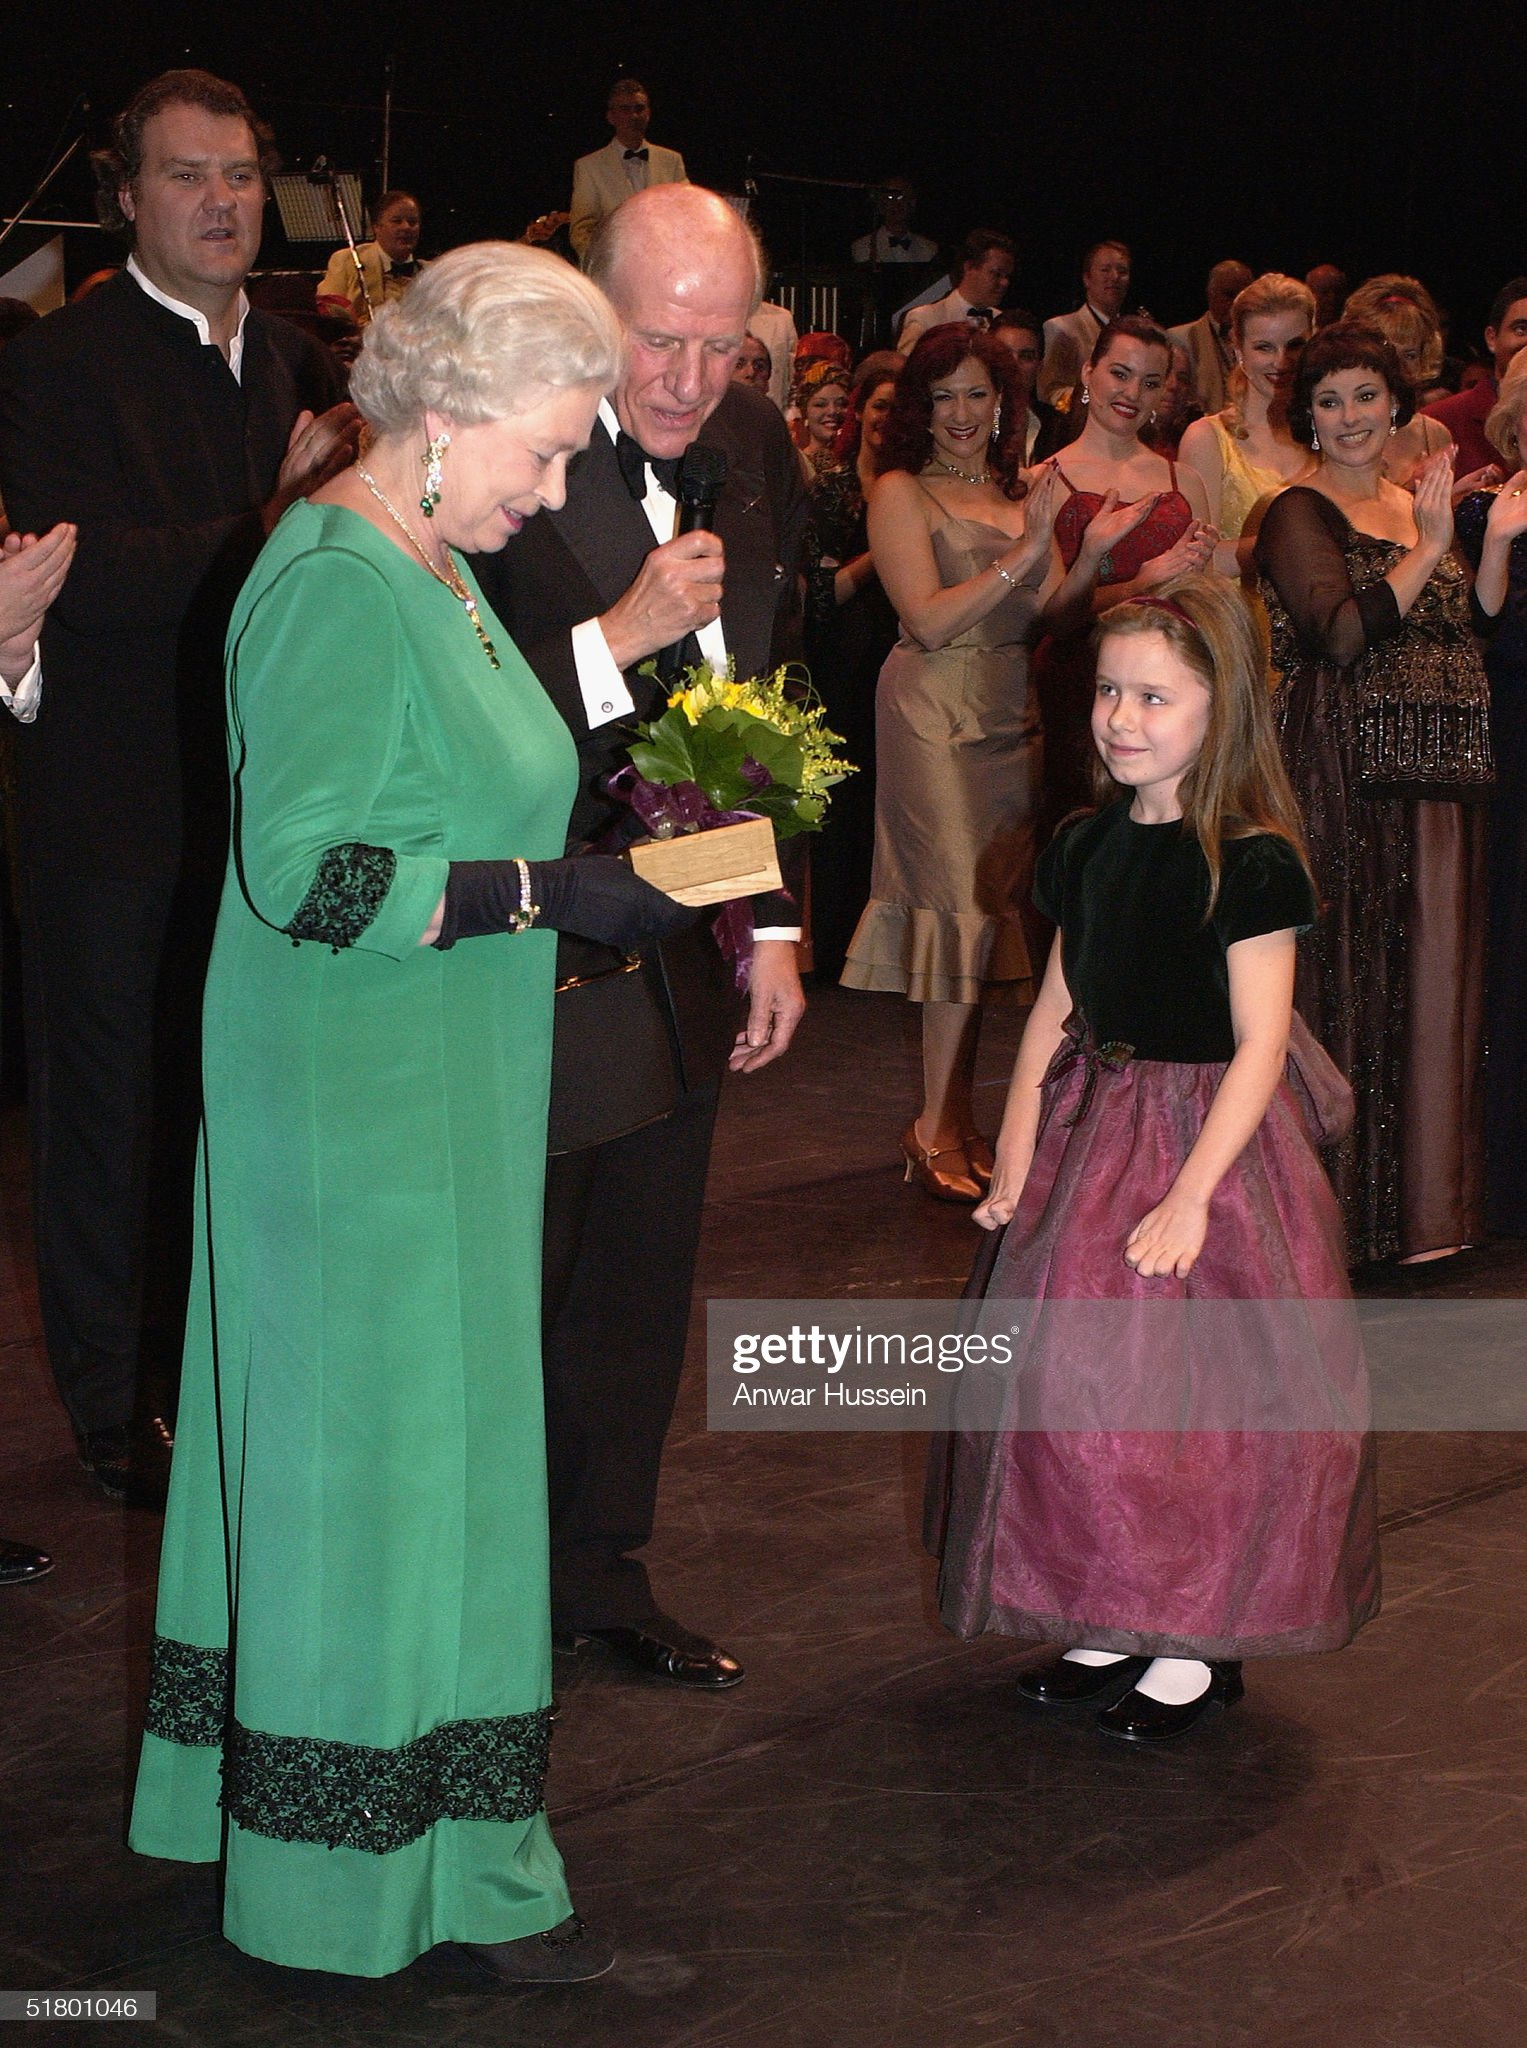 Royals Attend Gala At The Wales Millennium Centre : News Photo